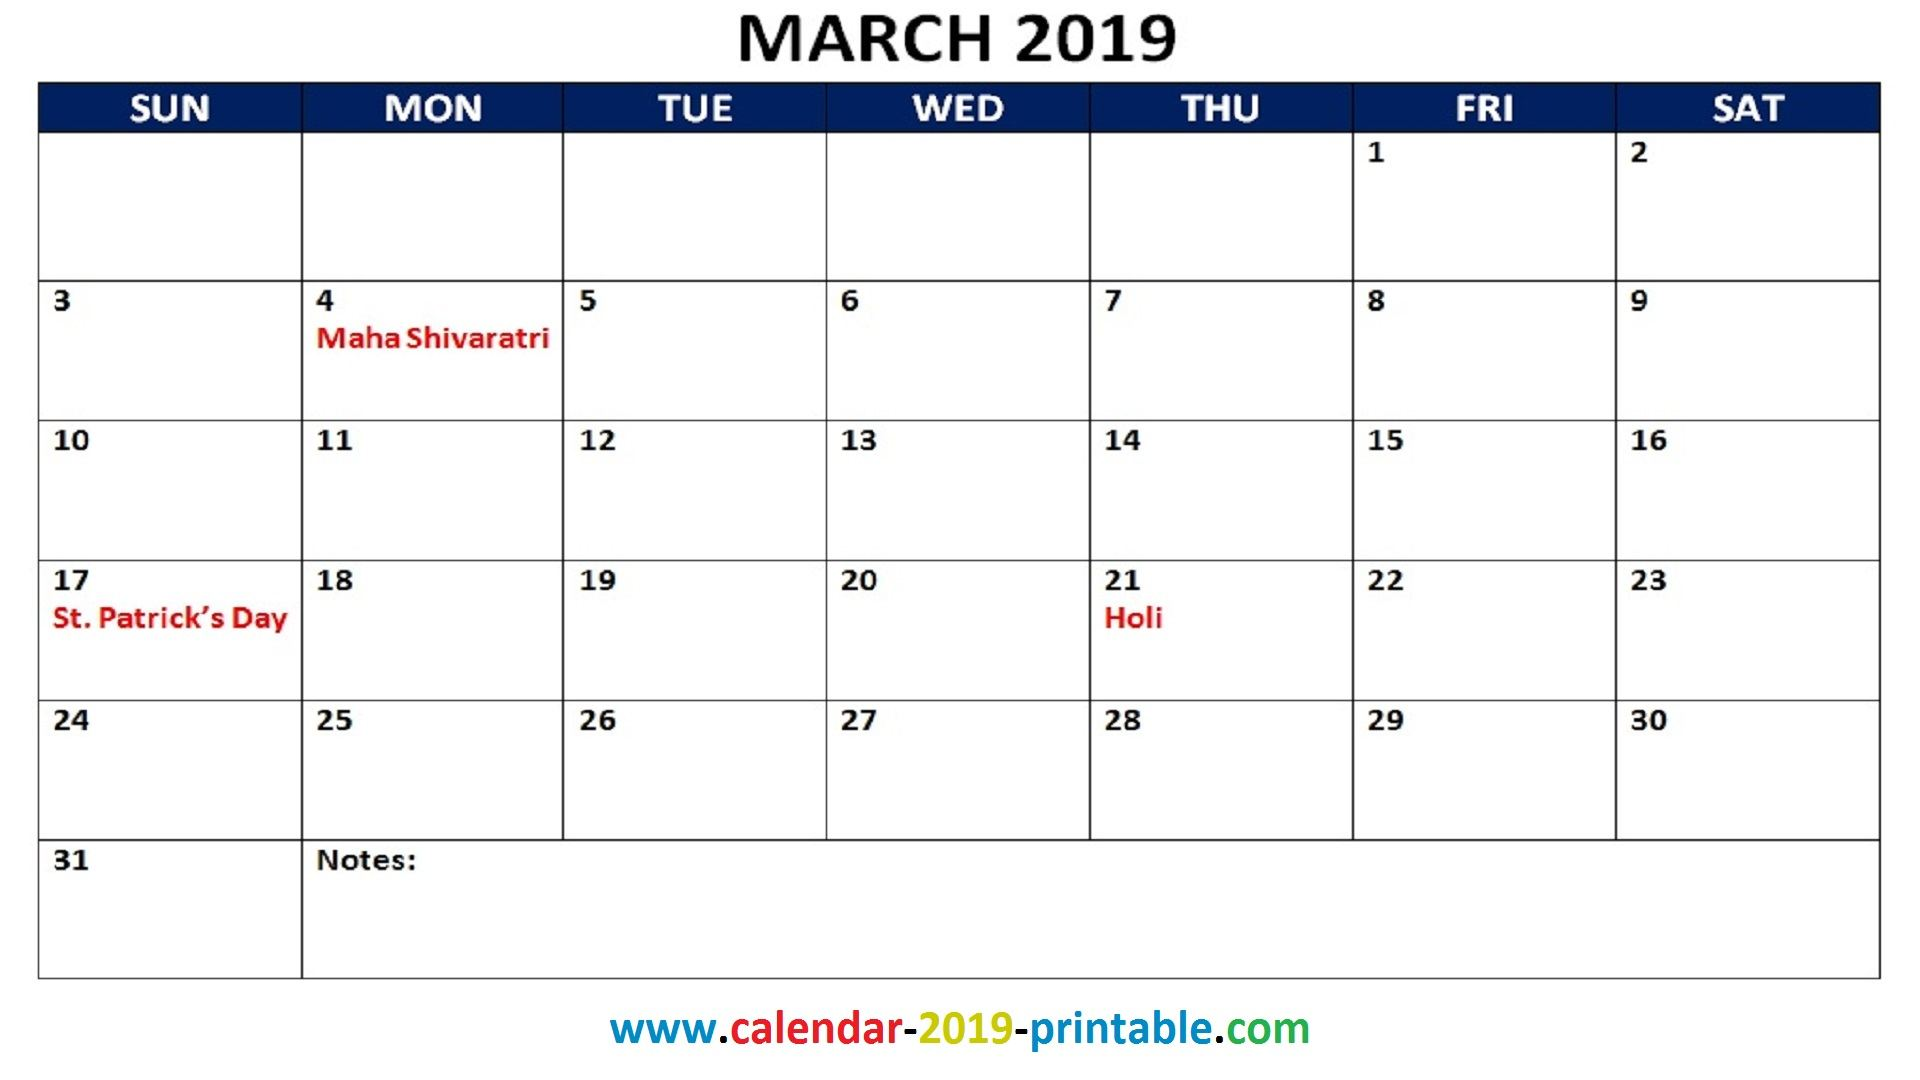 March 2019 Calendar Printable With Holidays